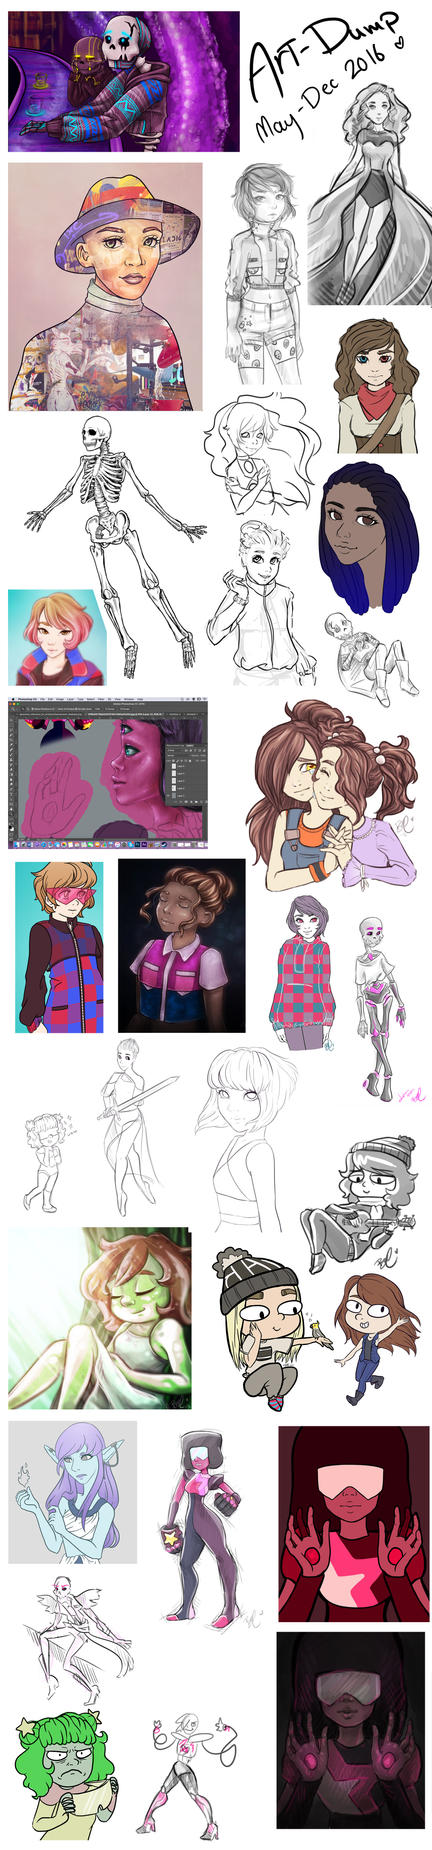 Art Dump June-December 2016 by BrittanyTheAwesome